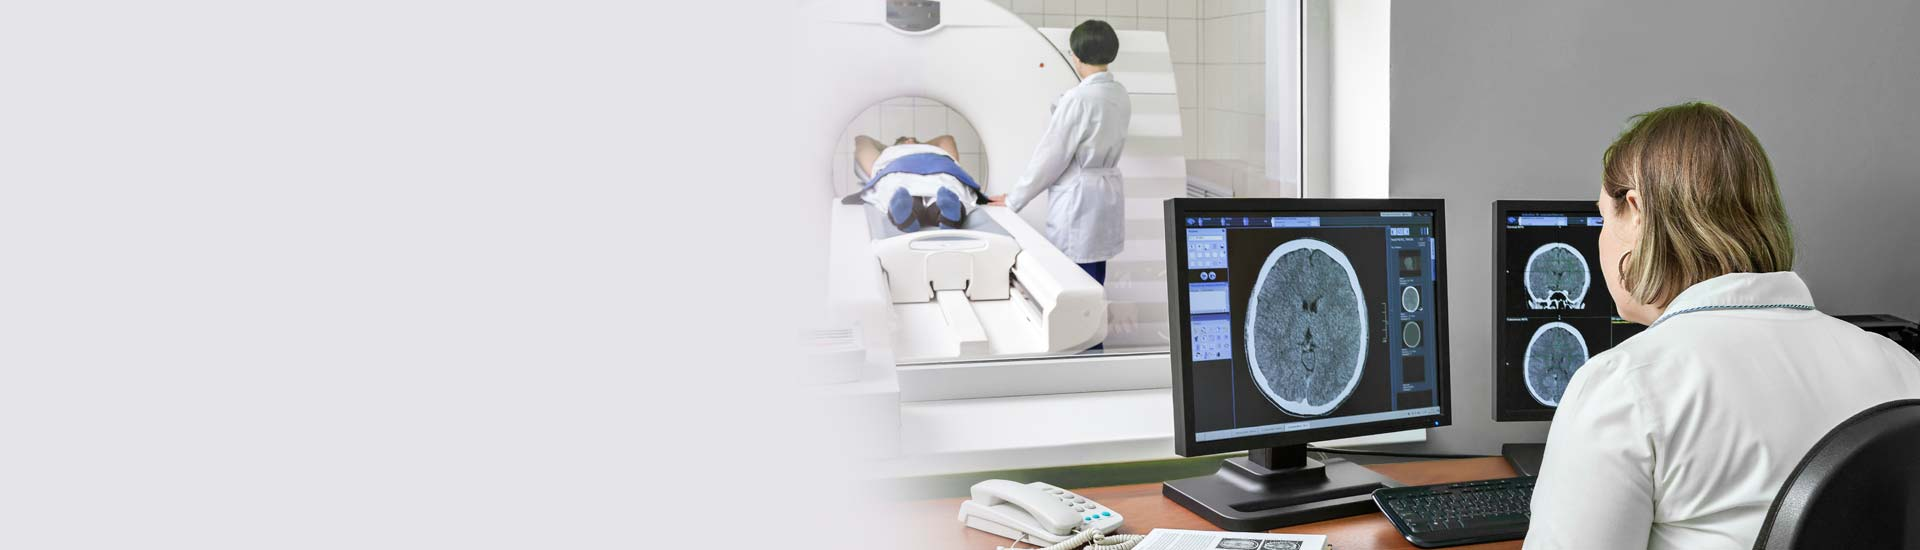 Imaging & Lab Services